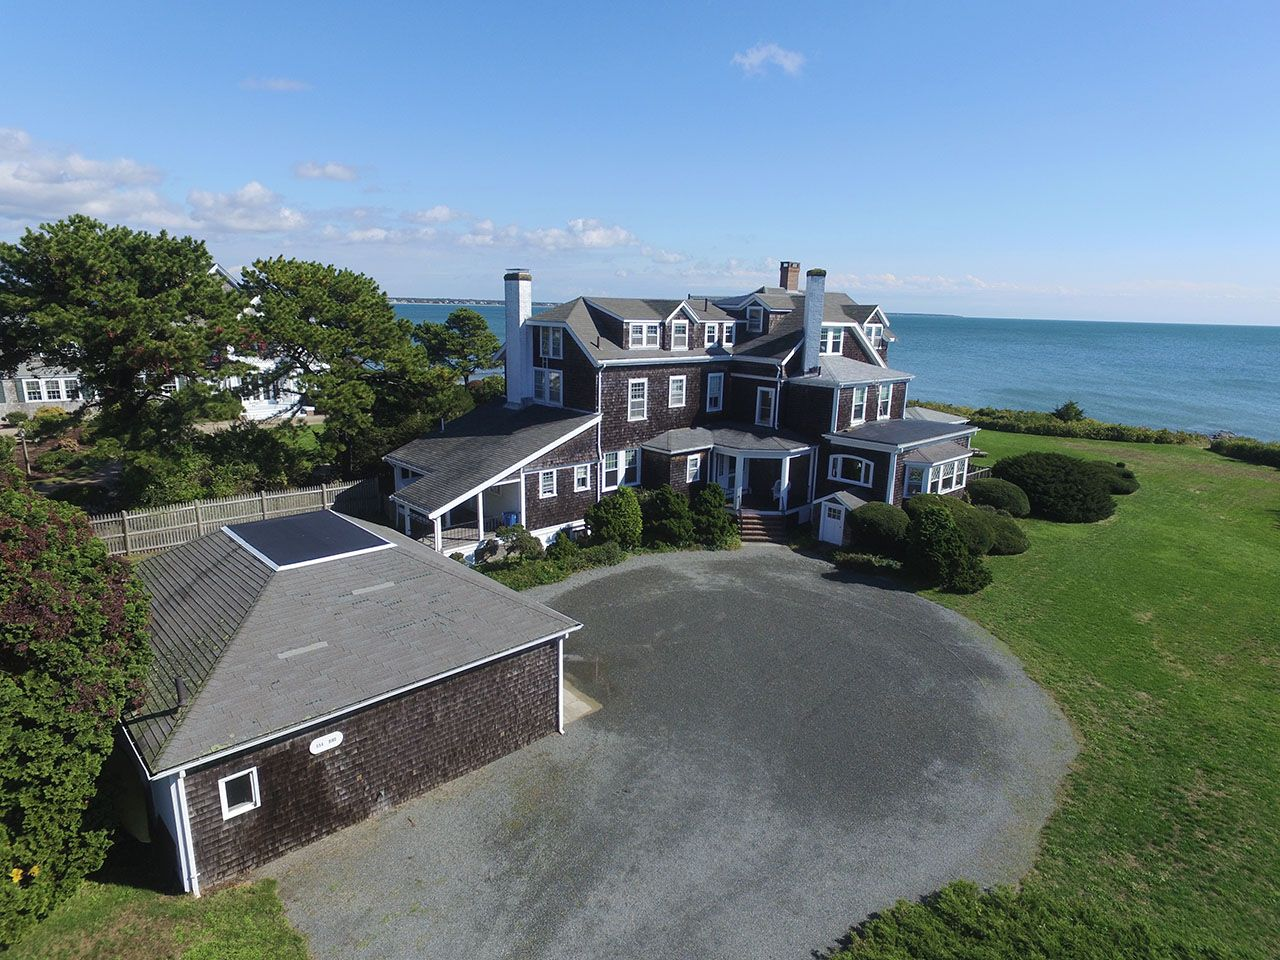 Additional photo for property listing at Wianno Waterfront Estate 554 Wianno Osterville, Μασαχουσετη,02655 Ηνωμενεσ Πολιτειεσ